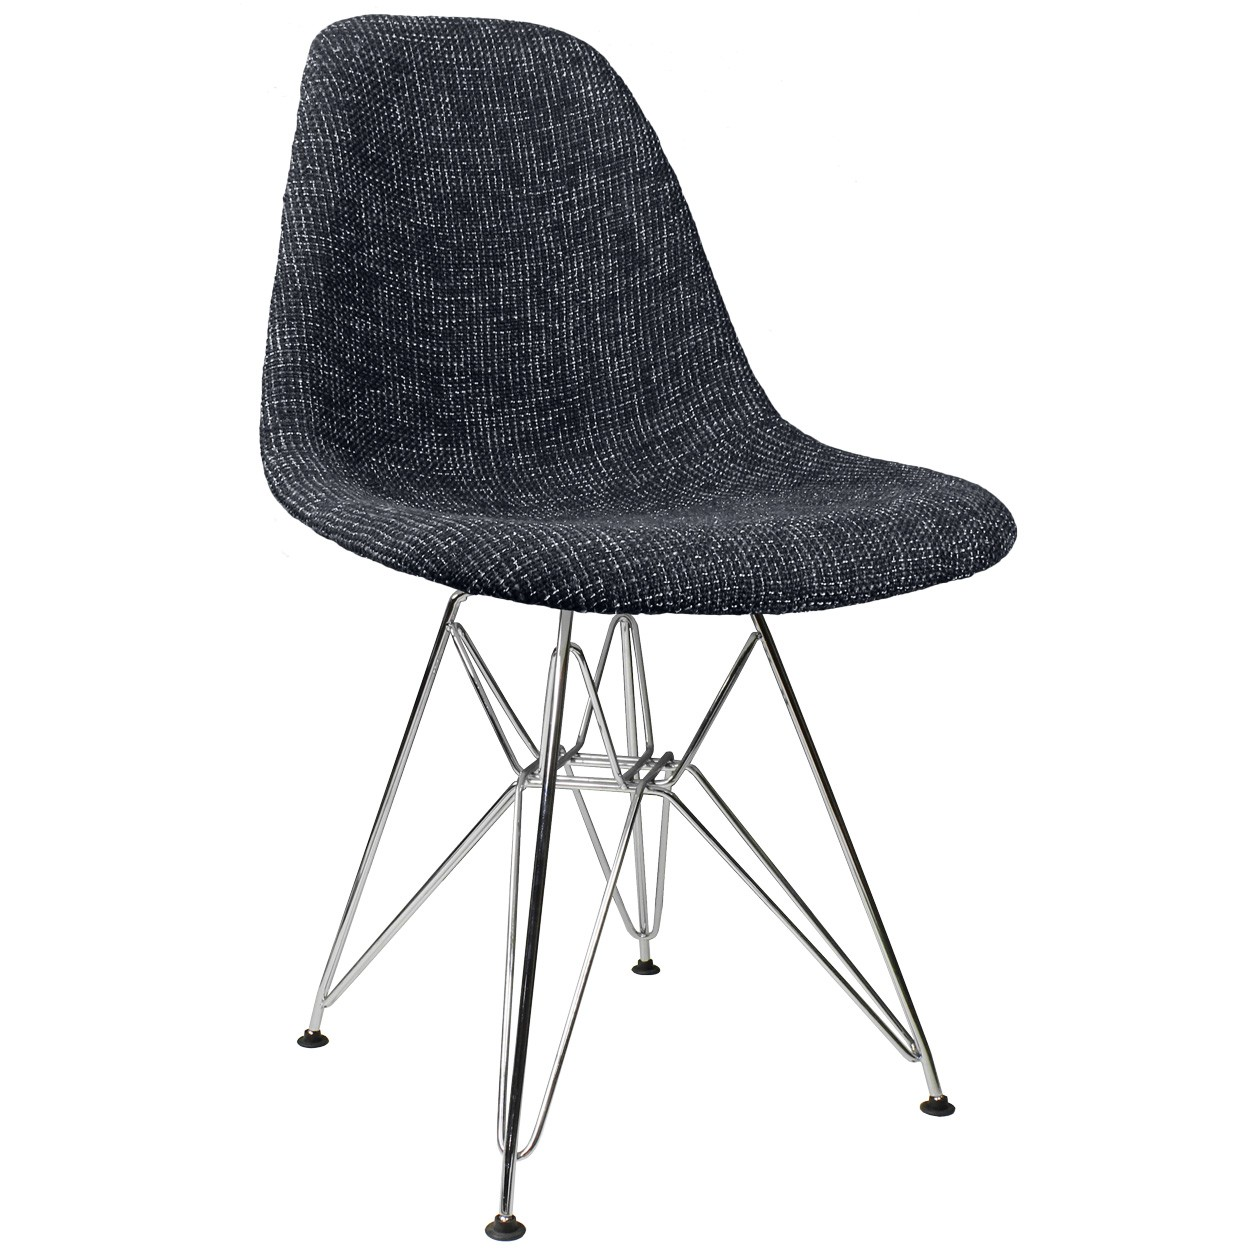 Black Fabric Upholstered Mid Century Eames Style Accent